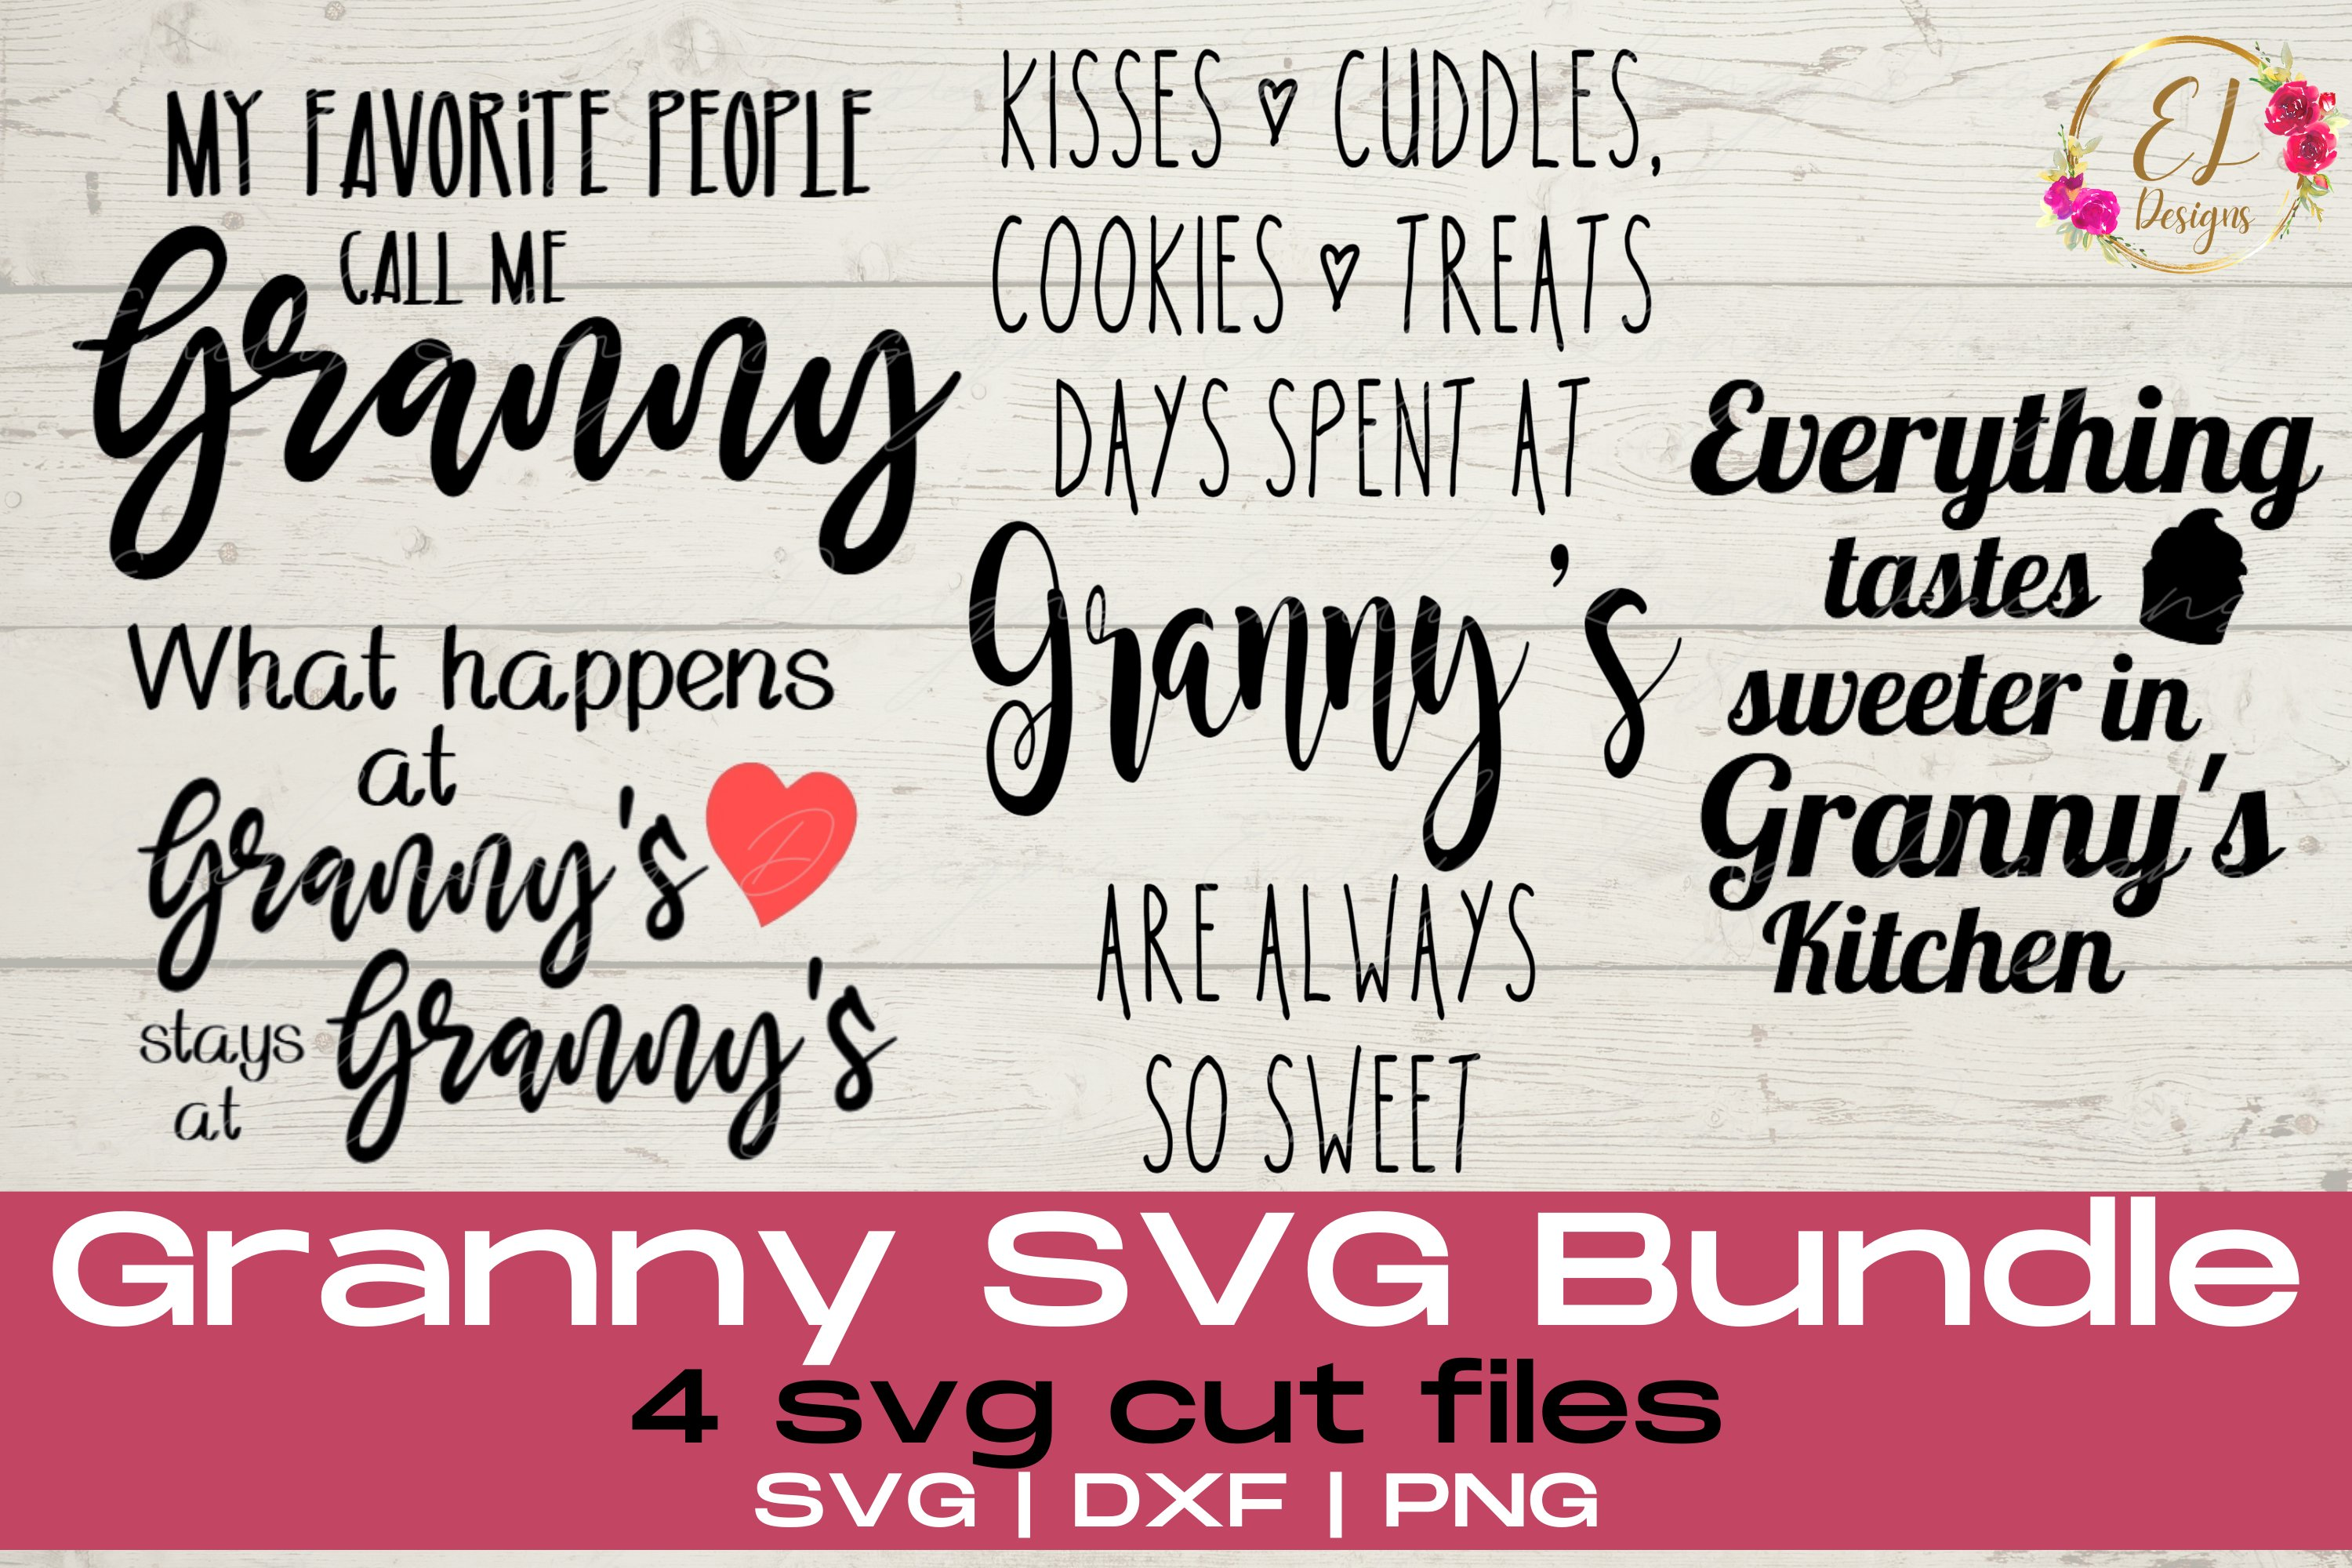 Free Don't forget to get your grandma a mother's day gift this year. Granny Svg Bundle Grandparents Svg Mothers Day Svg 1032293 Cut Files Design Bundles SVG, PNG, EPS, DXF File